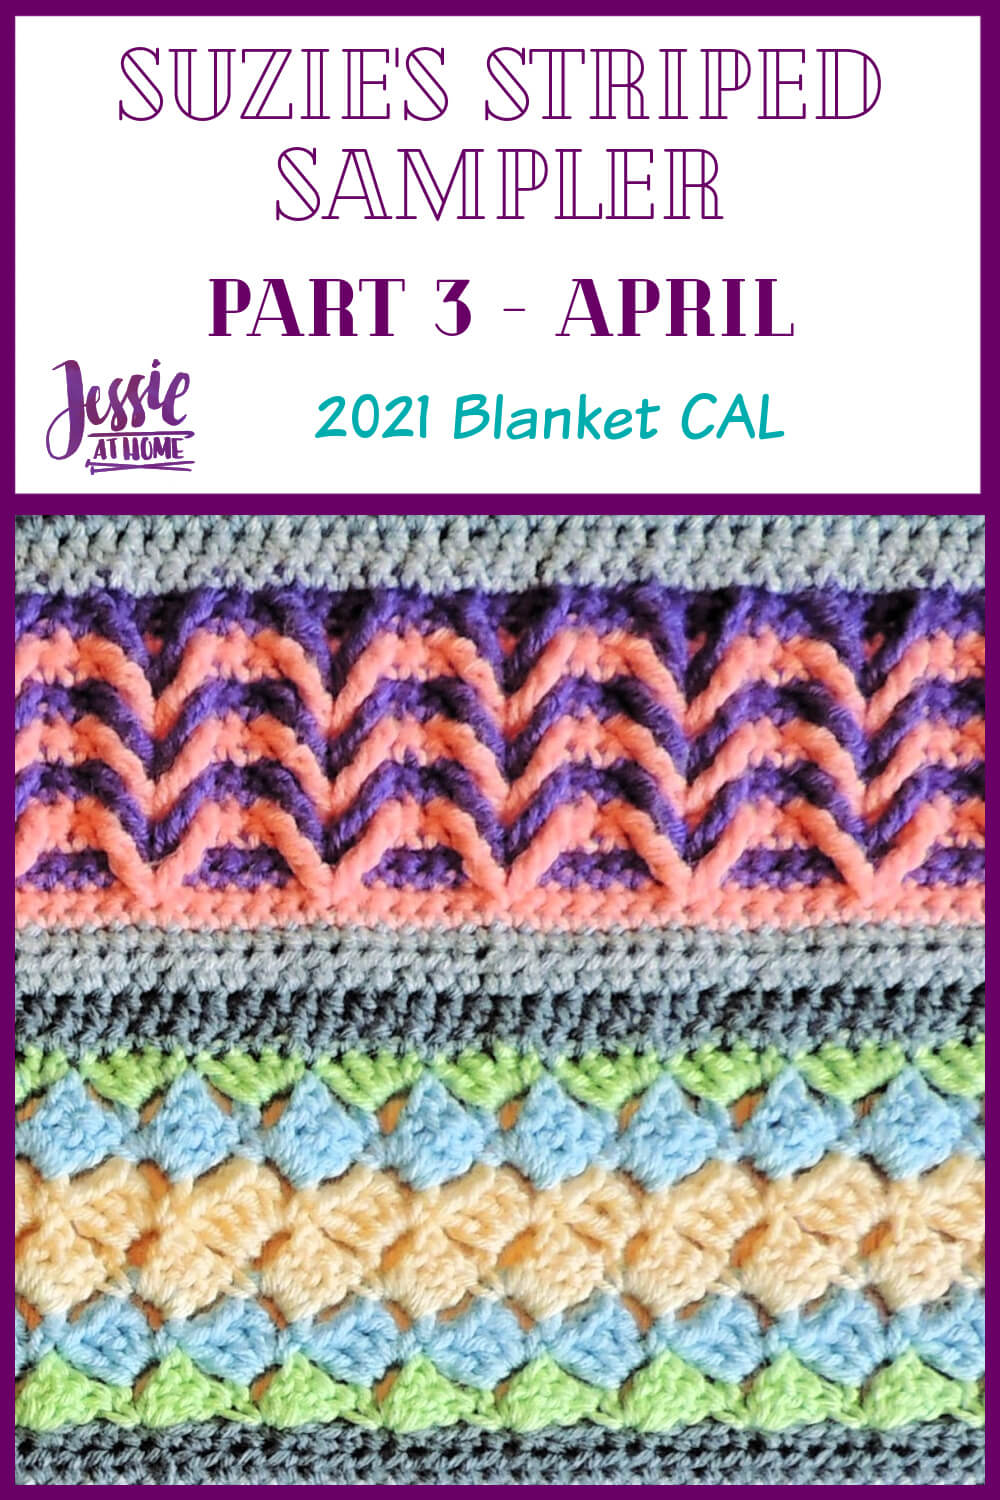 Suzie's Striped Sampler Part 3 by Jessie At Home - Pin 1